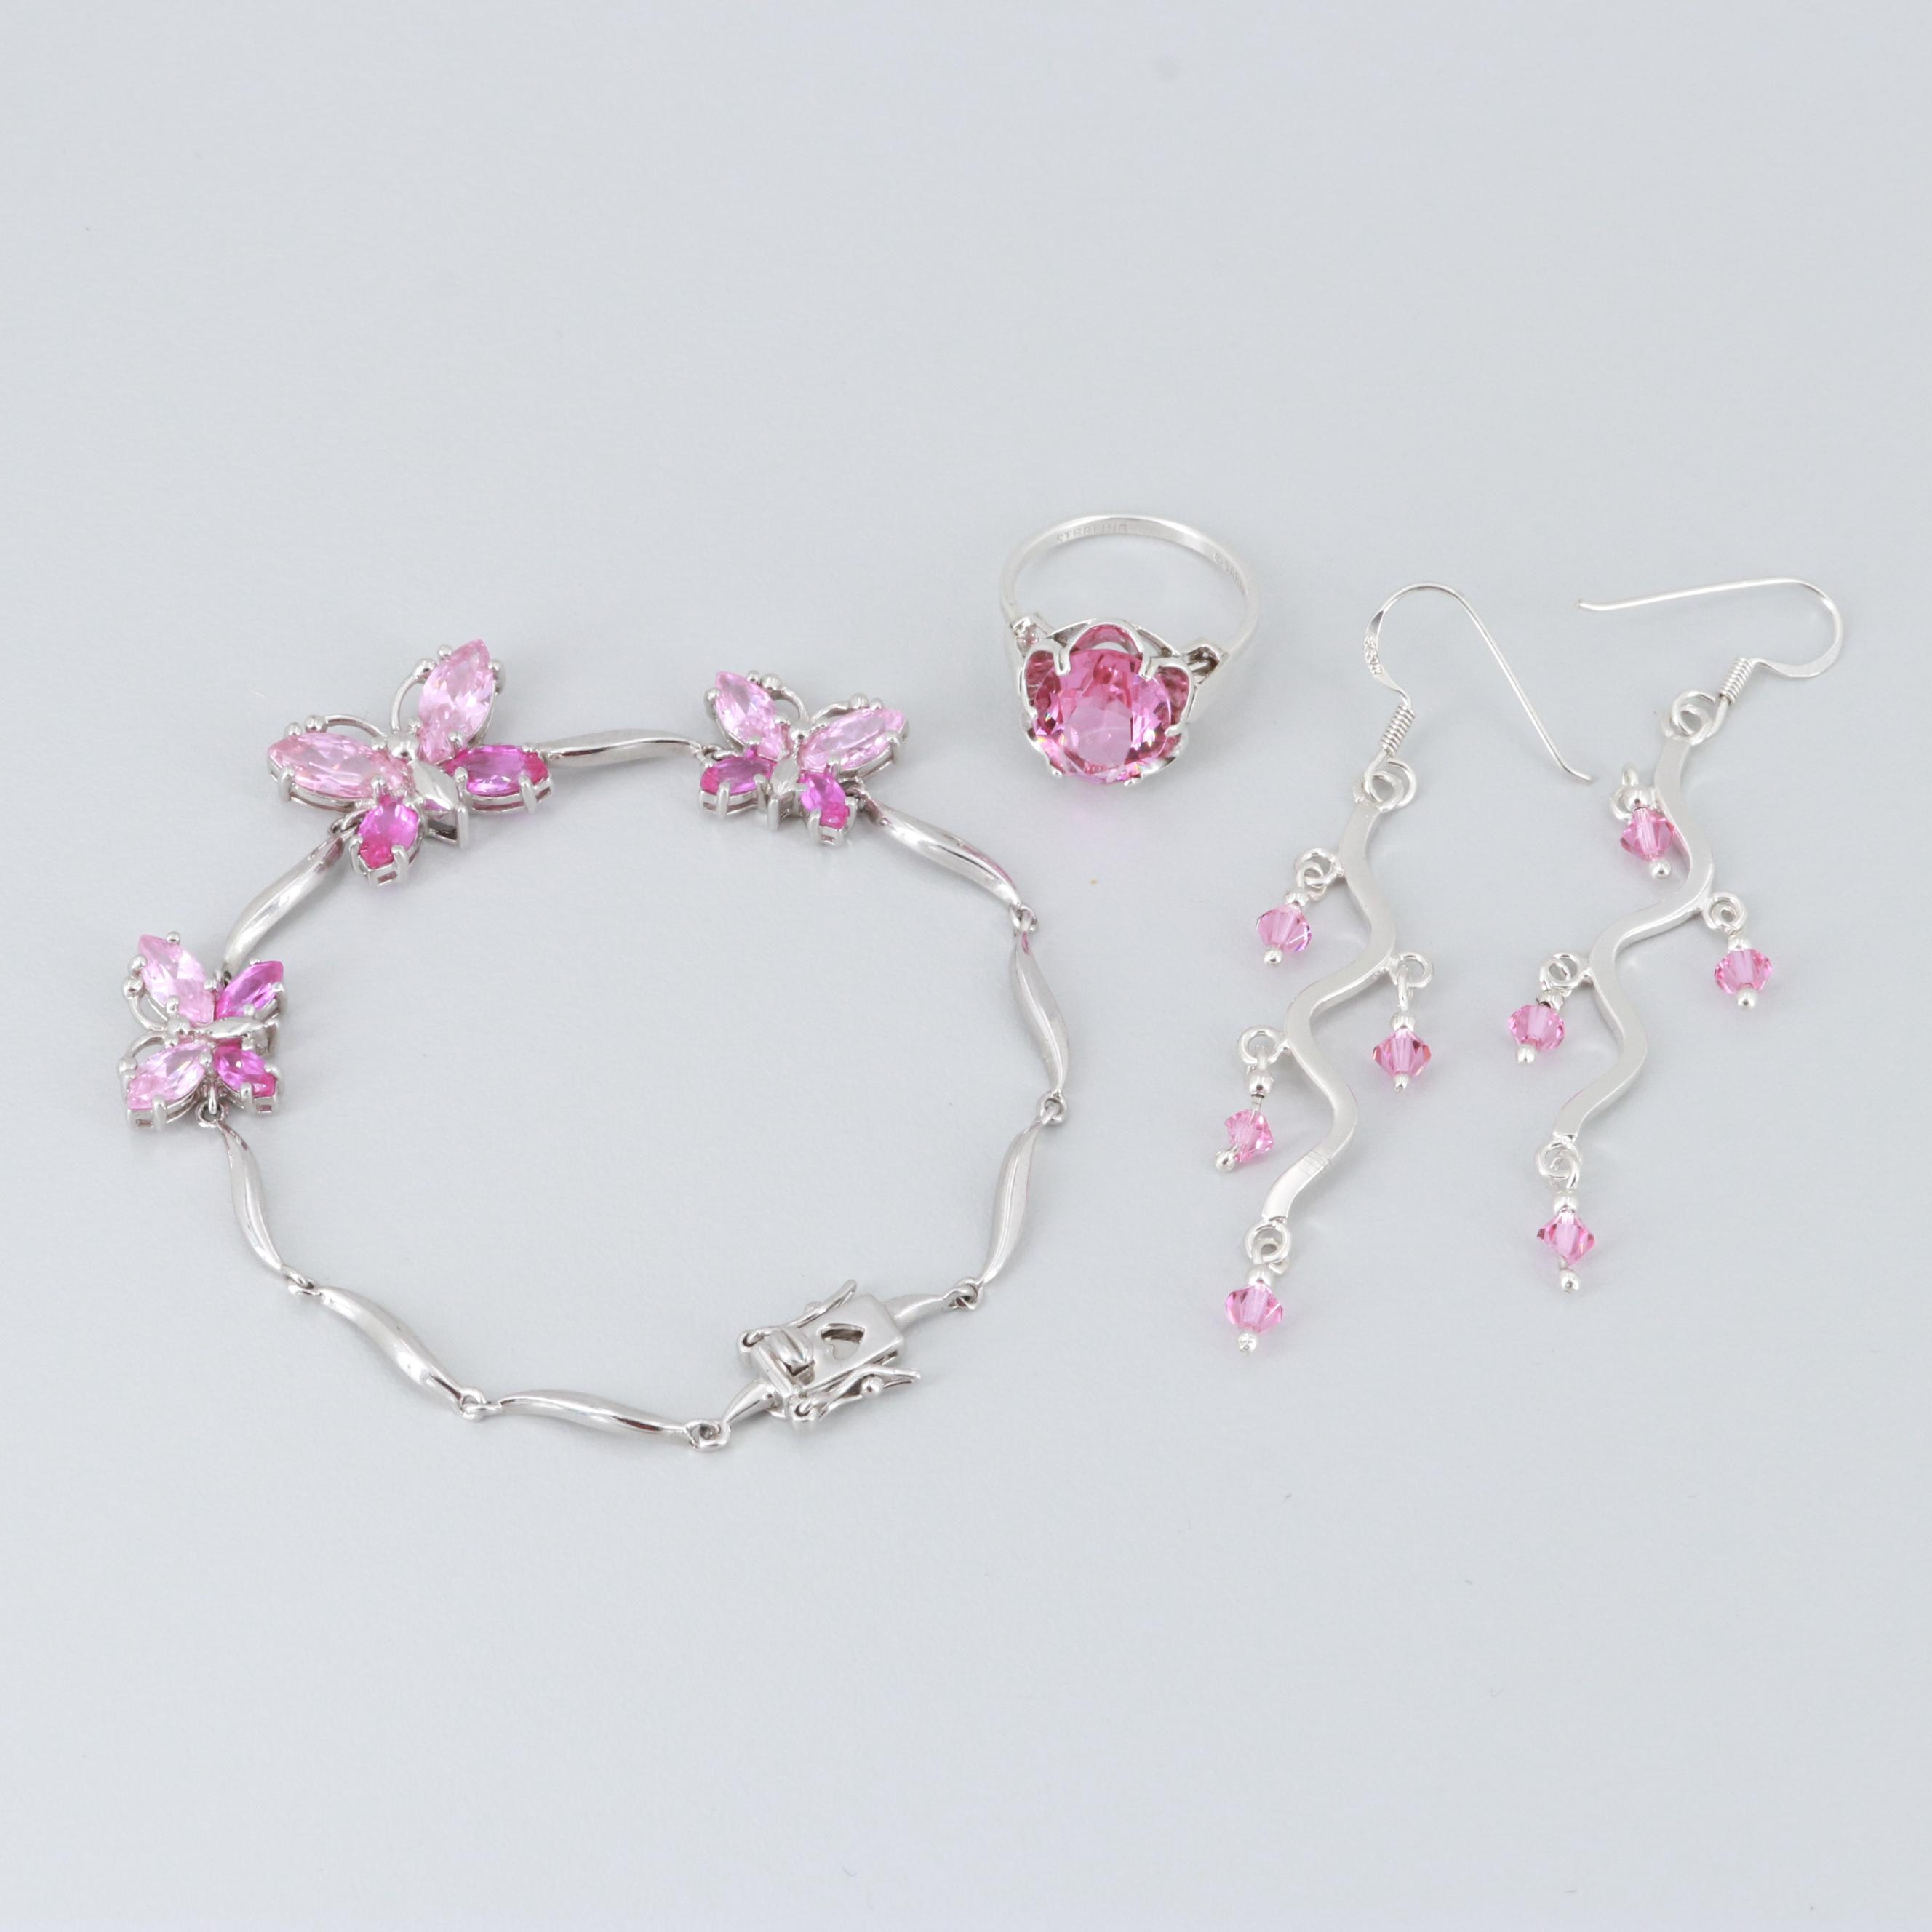 Sterling Silver Cubic Zirconia Bracelet, Earrings, and Ring